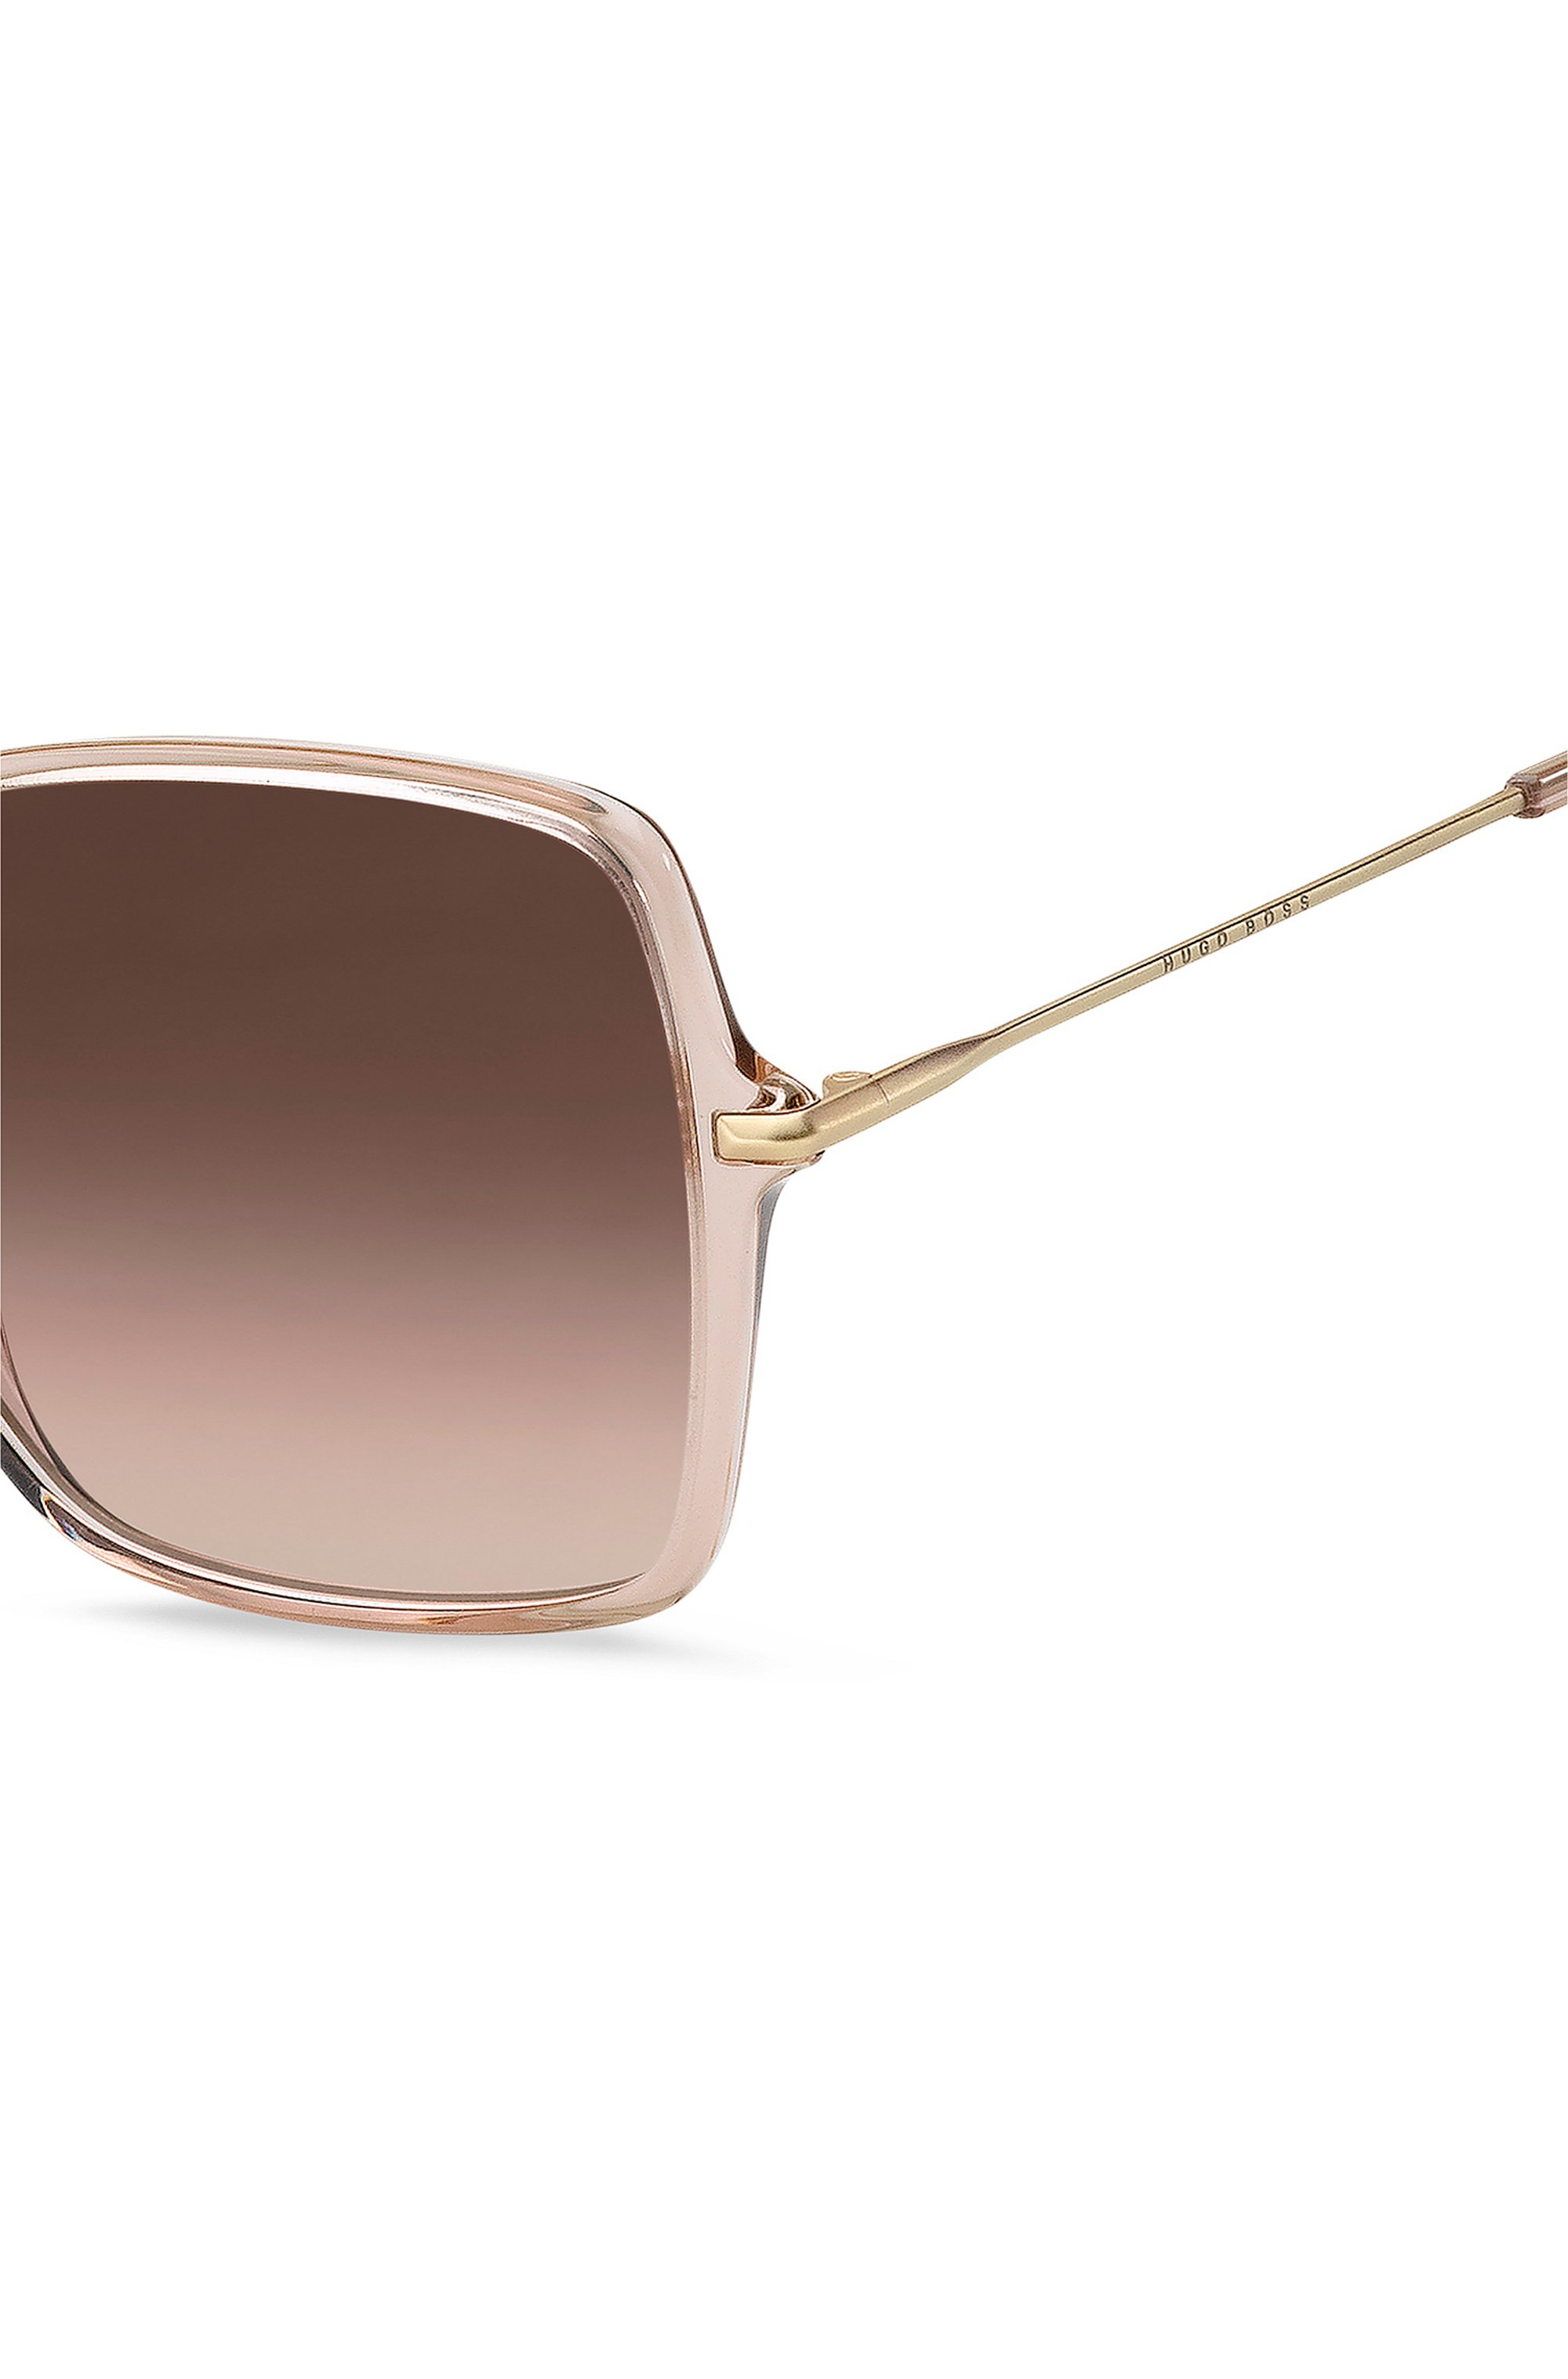 Sunglasses in nude acetate with brown shaded lenses